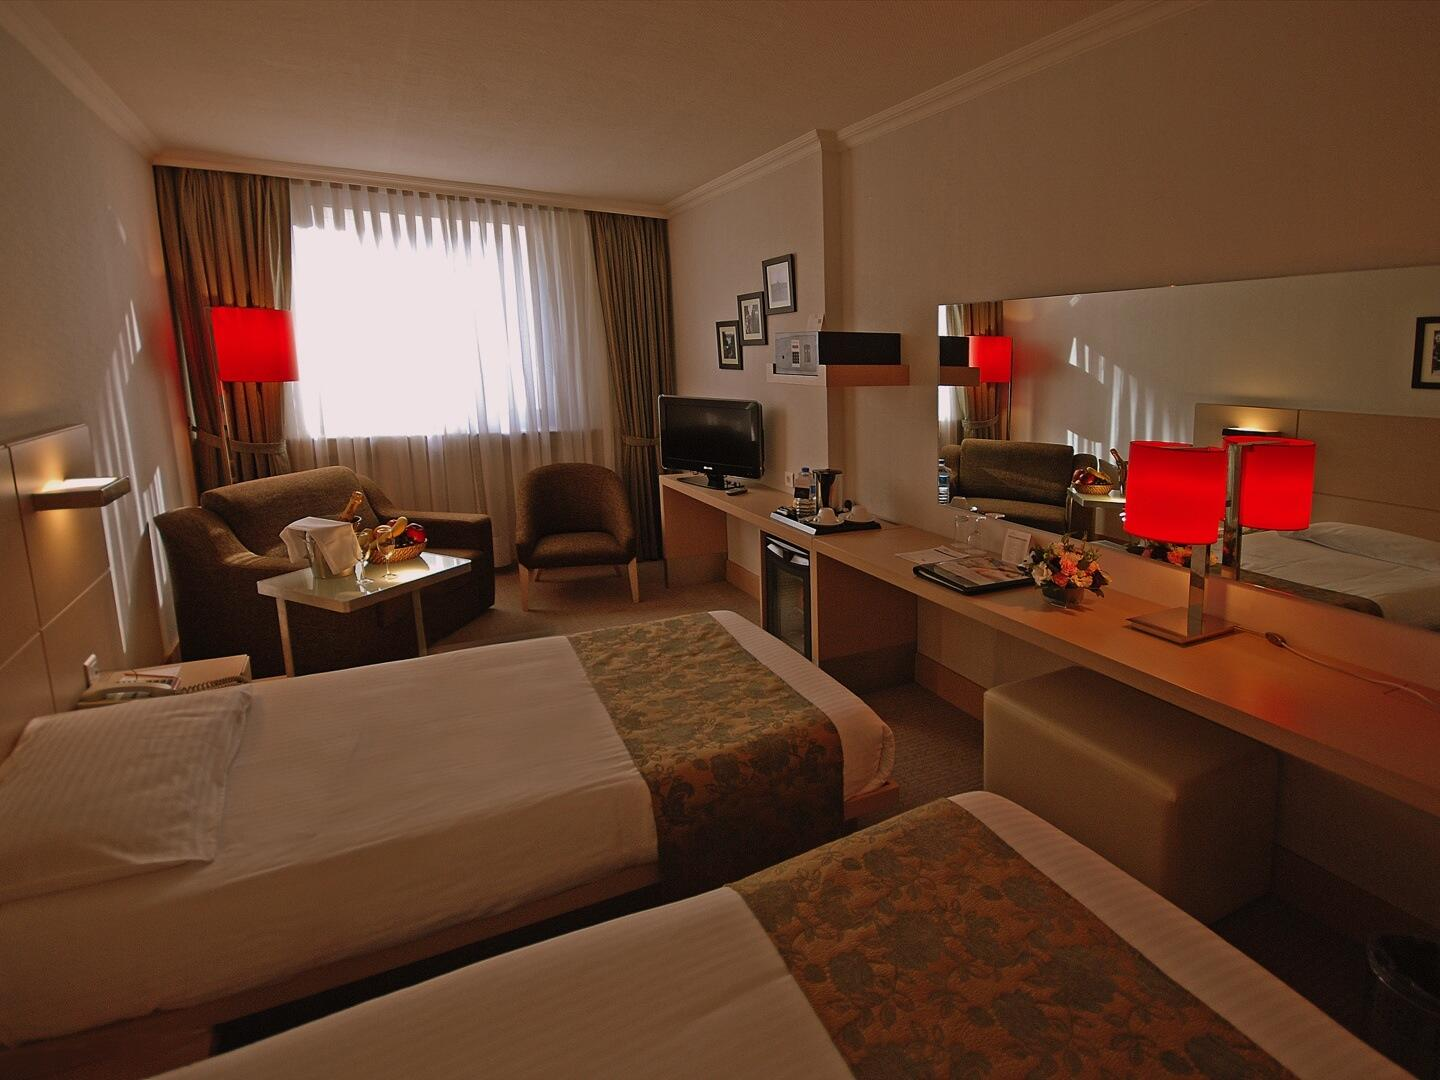 Bed room with a number of lamps at Eresin taxim premier.